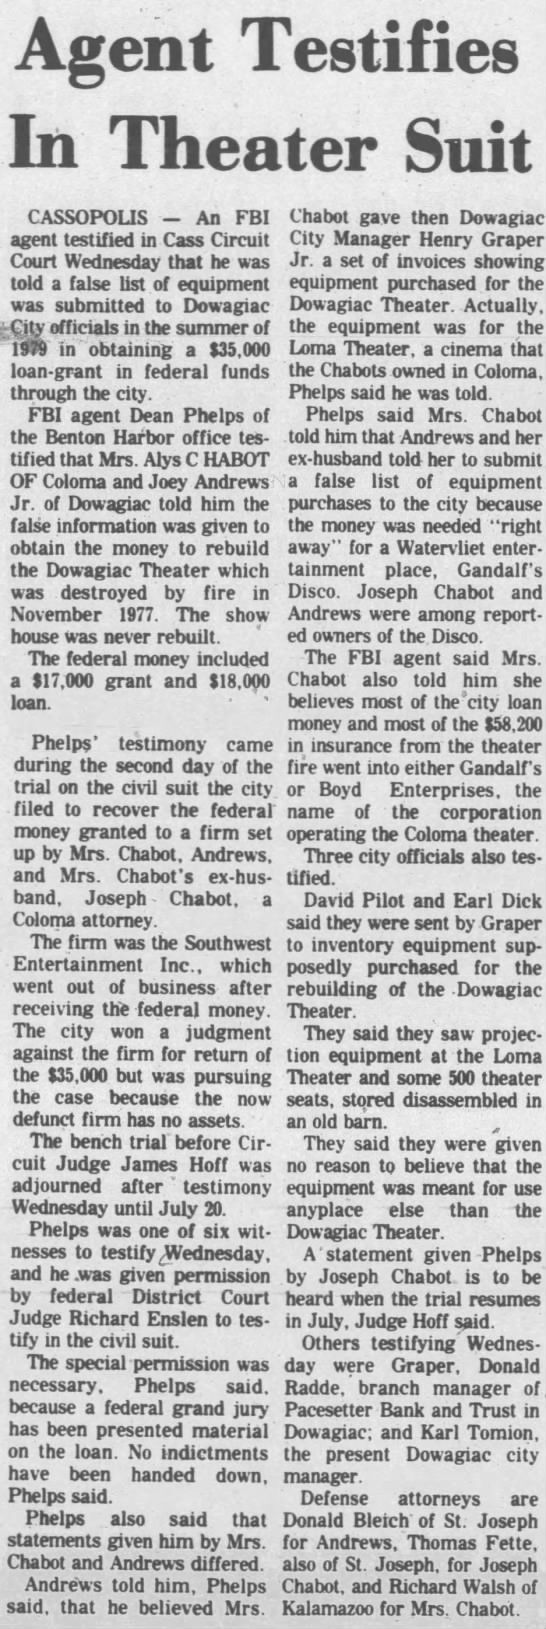 Dowagiac Theatre - JUNE 18 1981